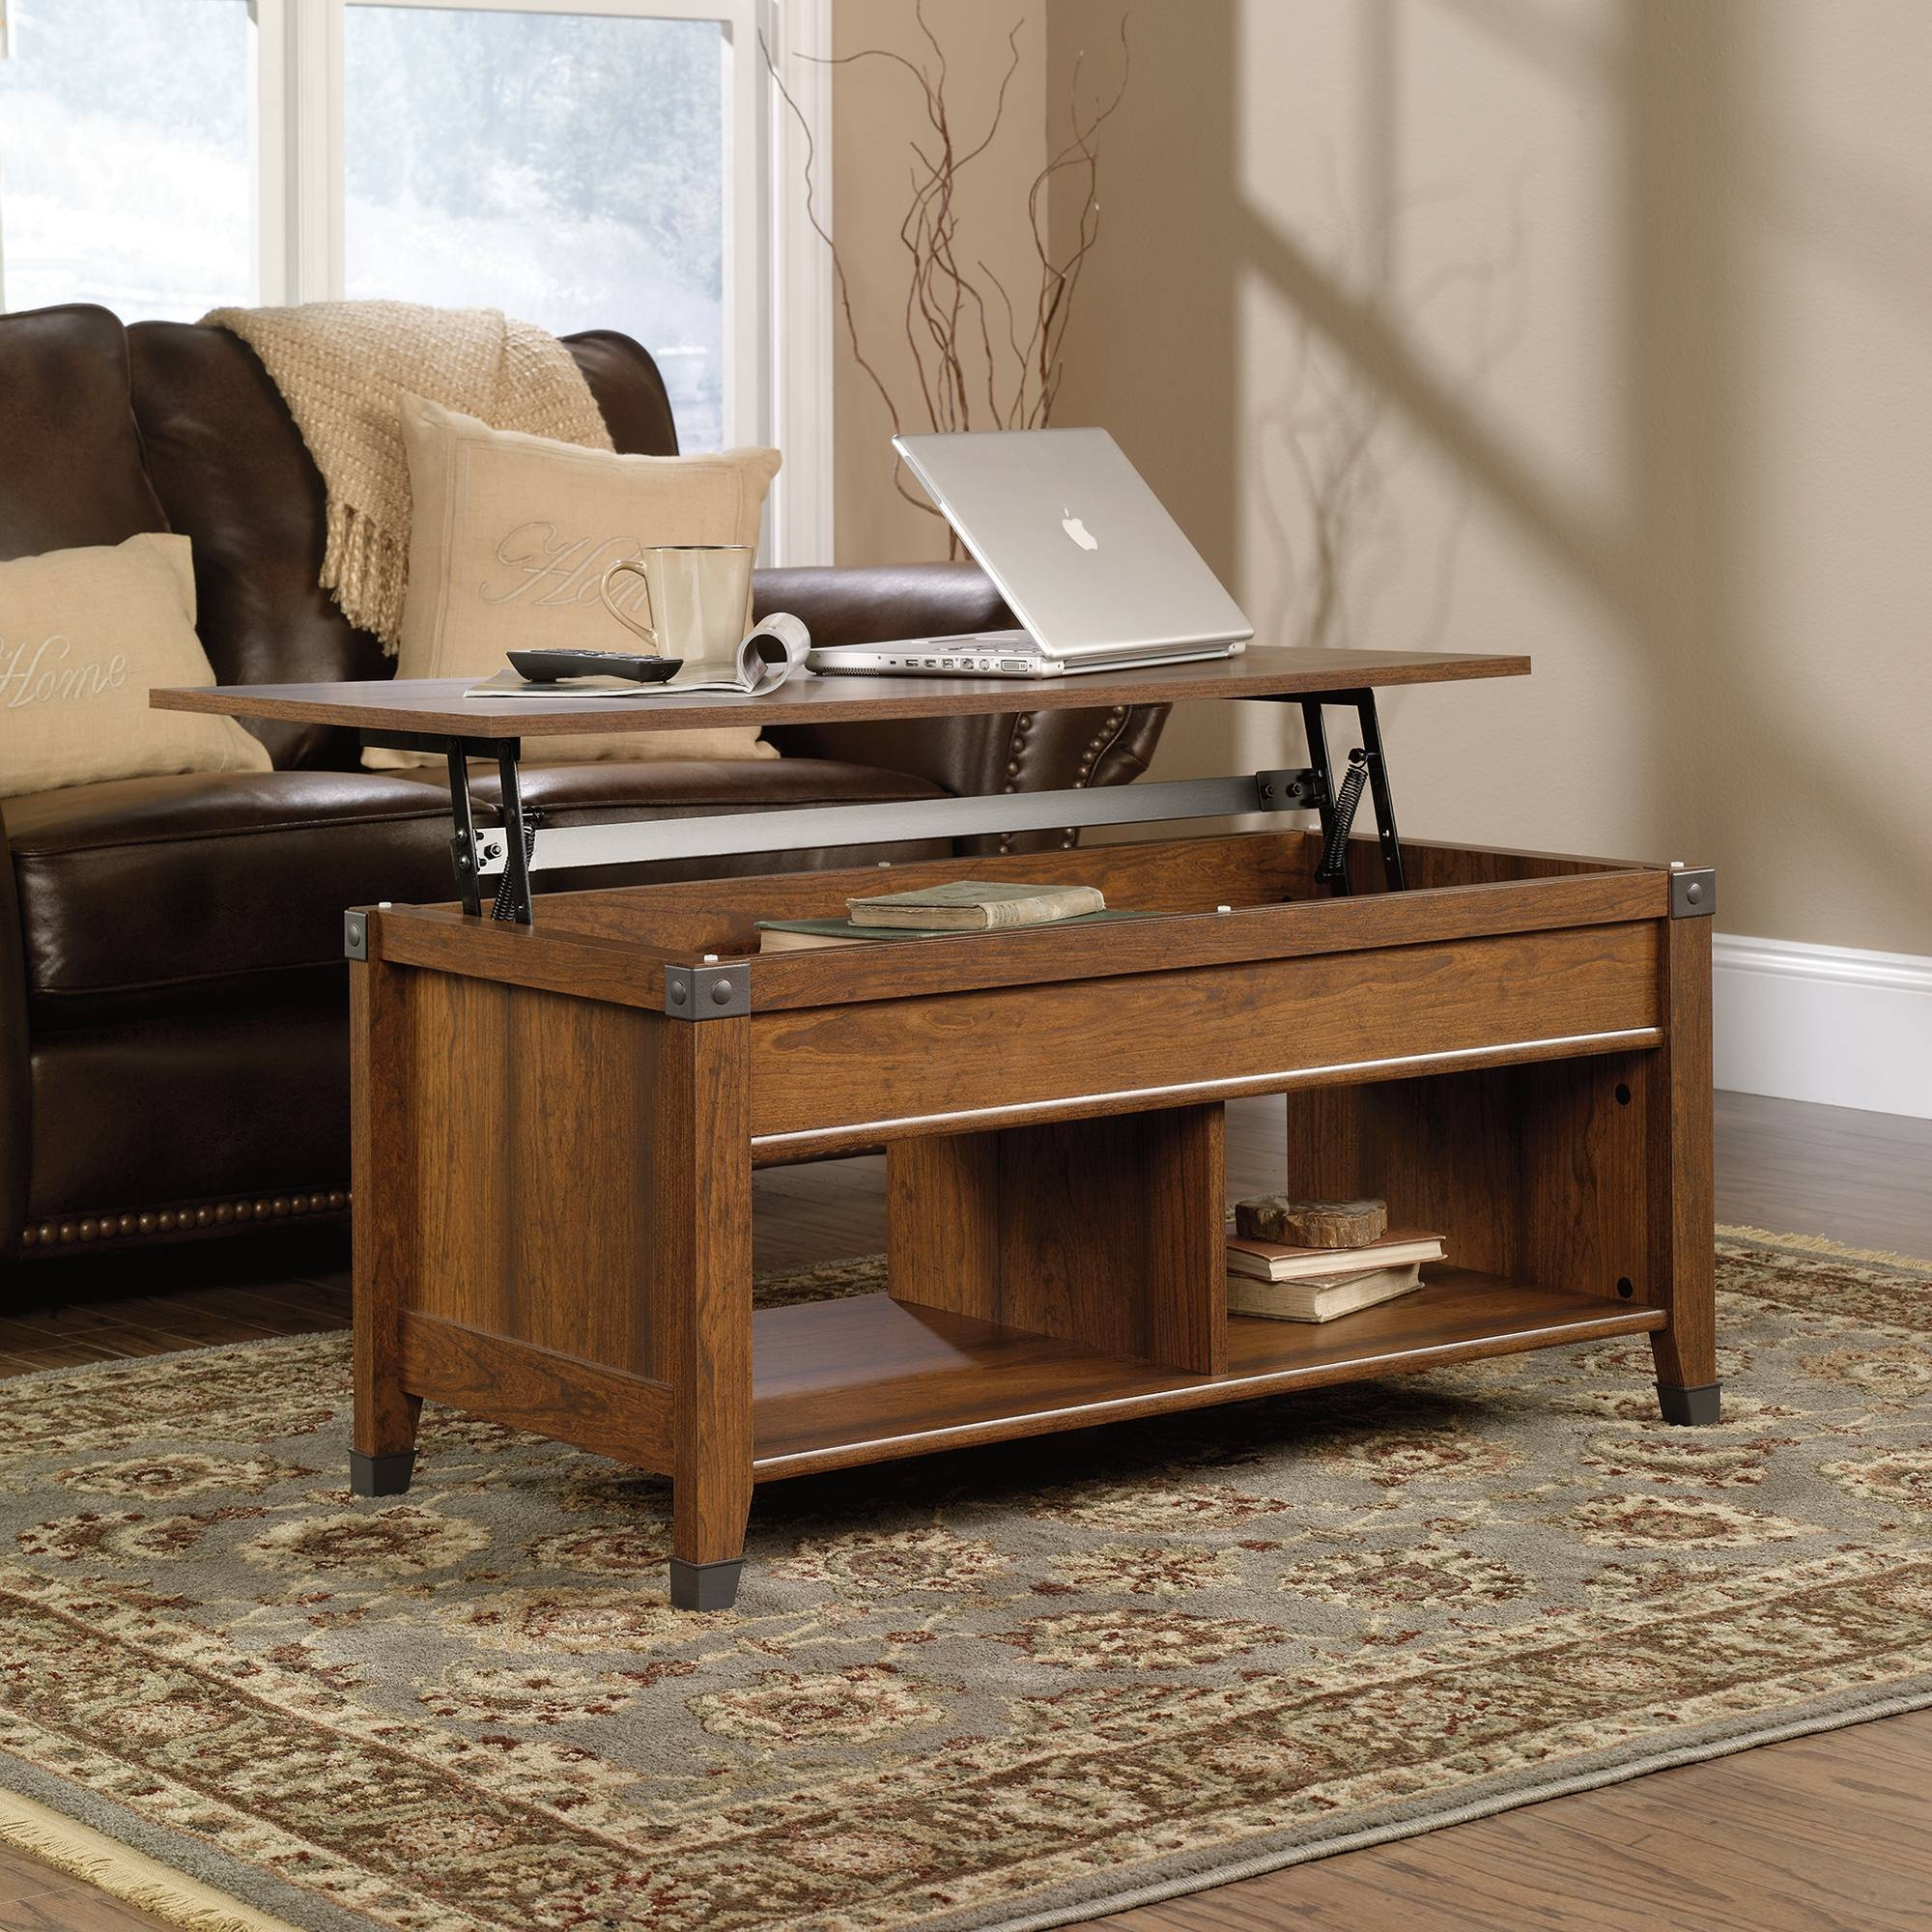 Carson Forge | Lift Top Coffee Table | 414444 | Sauder Within Coffee Tables With Lift Up Top (View 7 of 30)